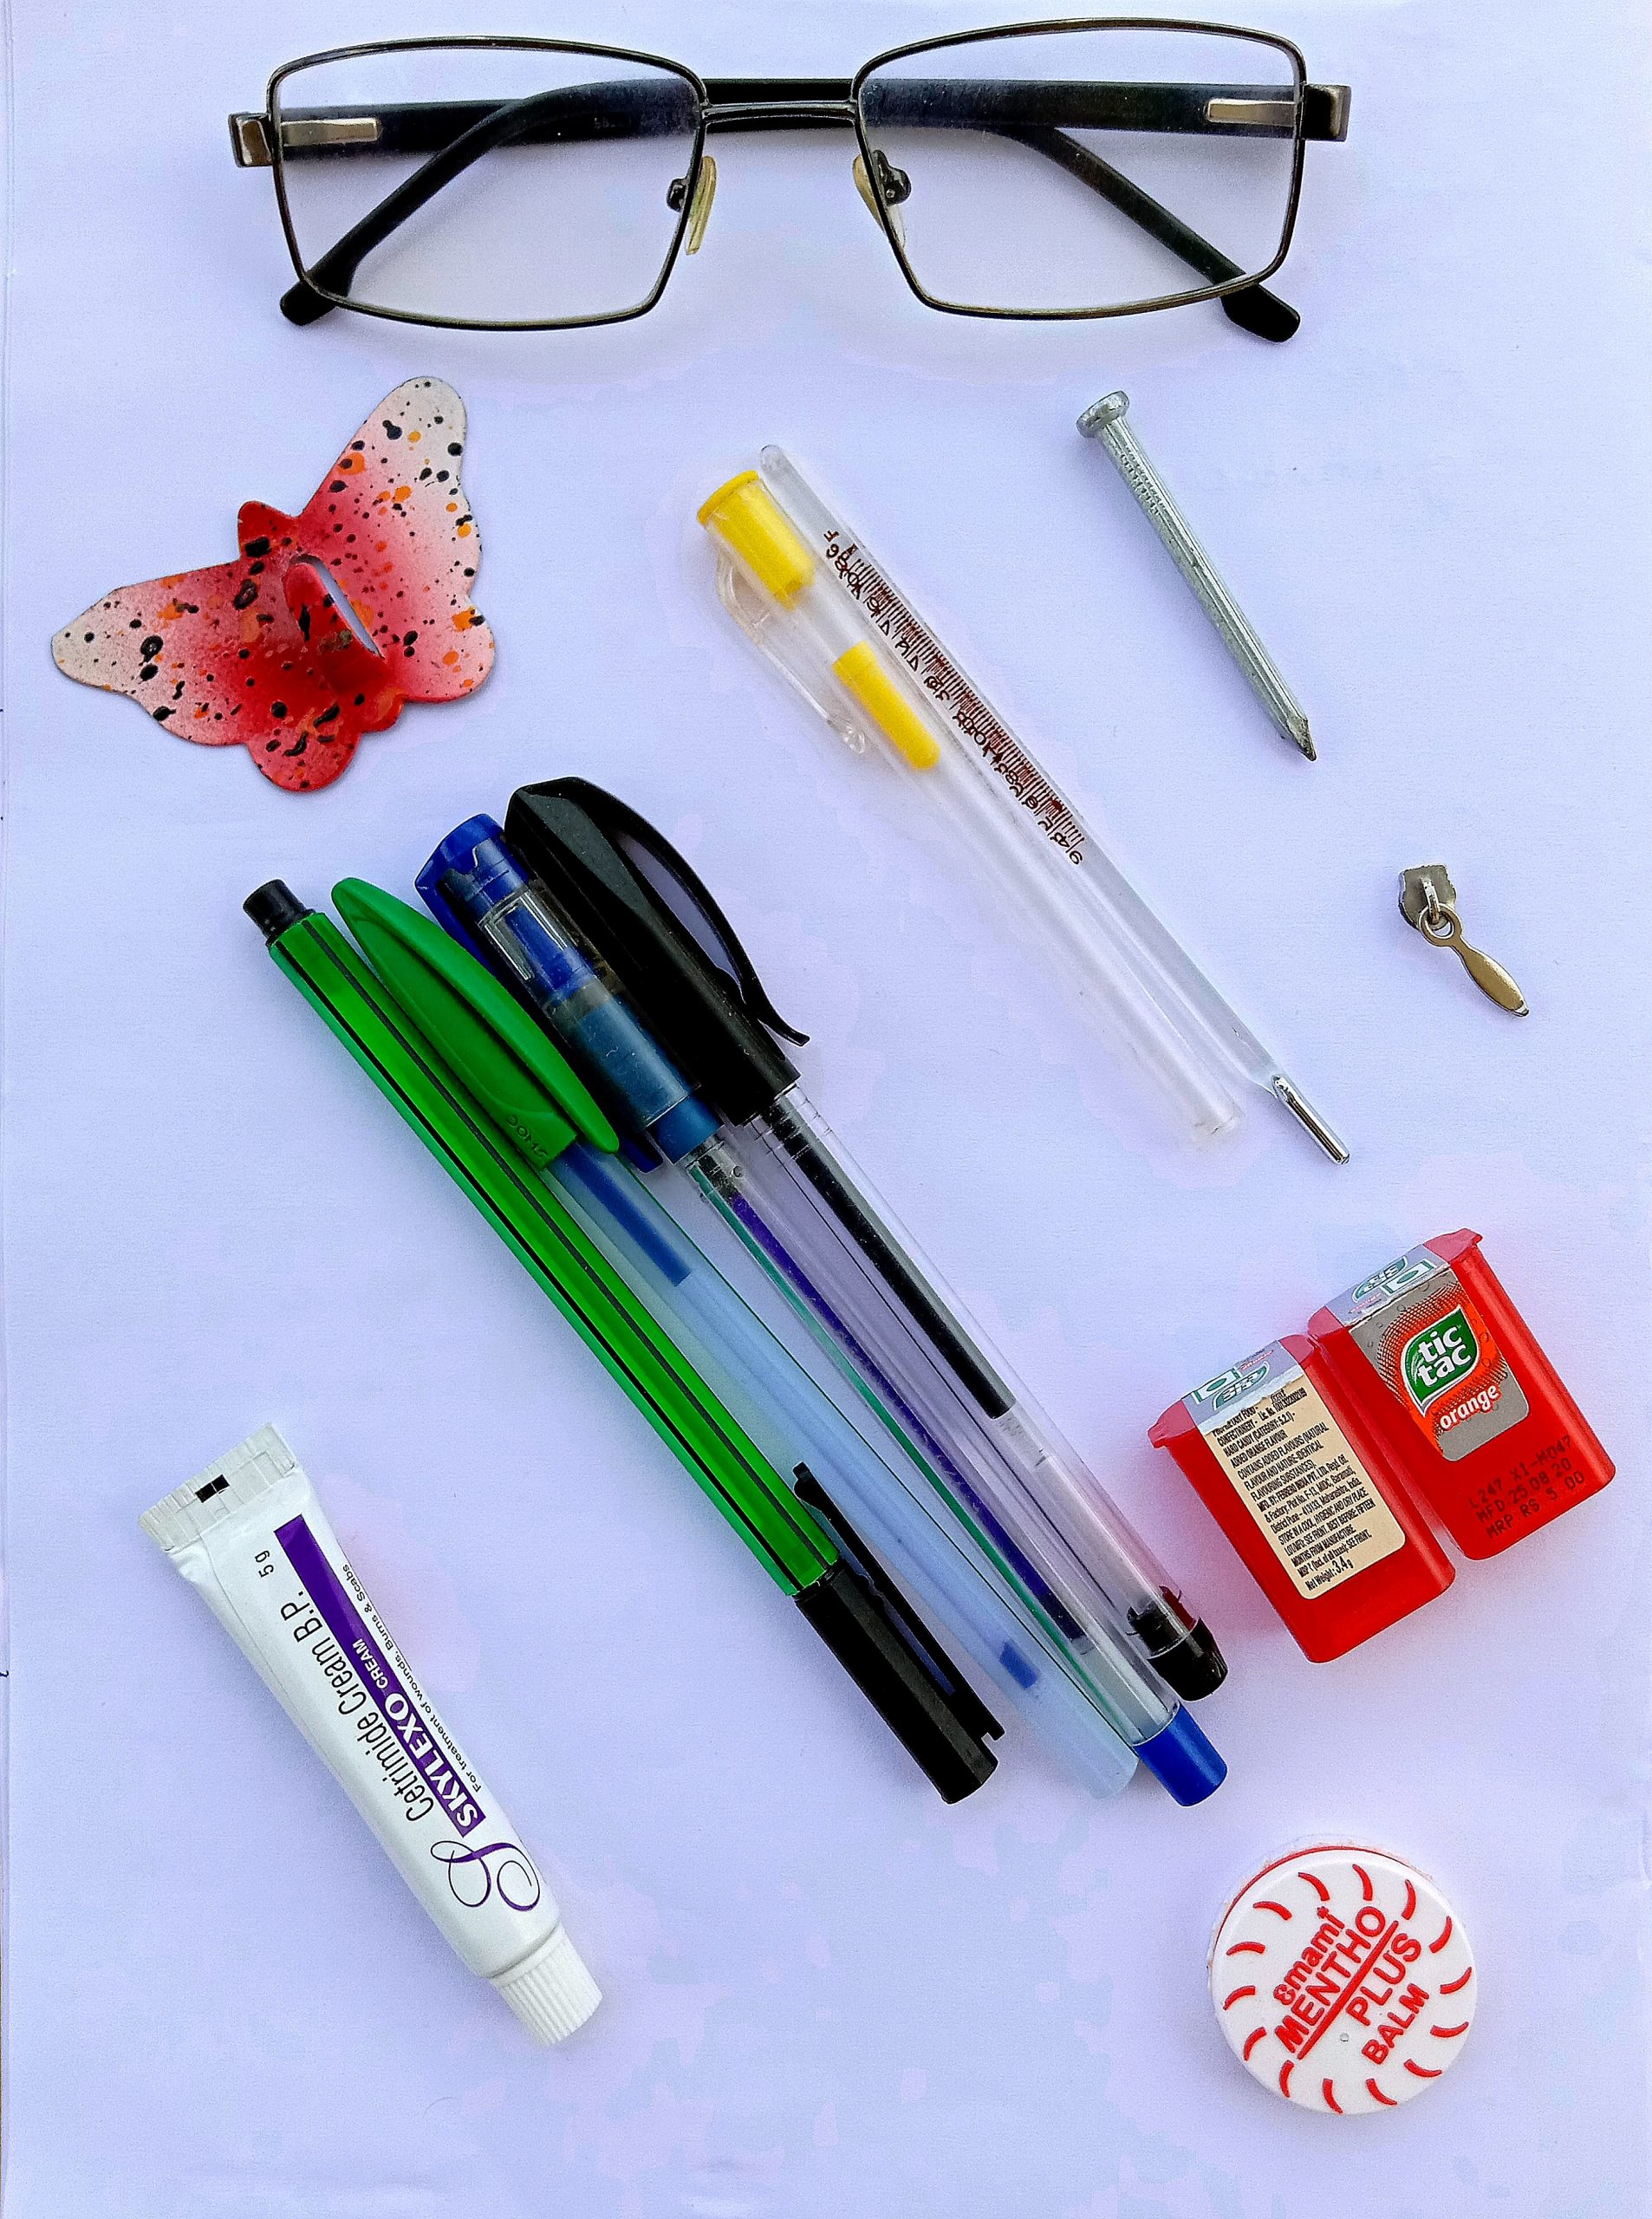 Pen and other things